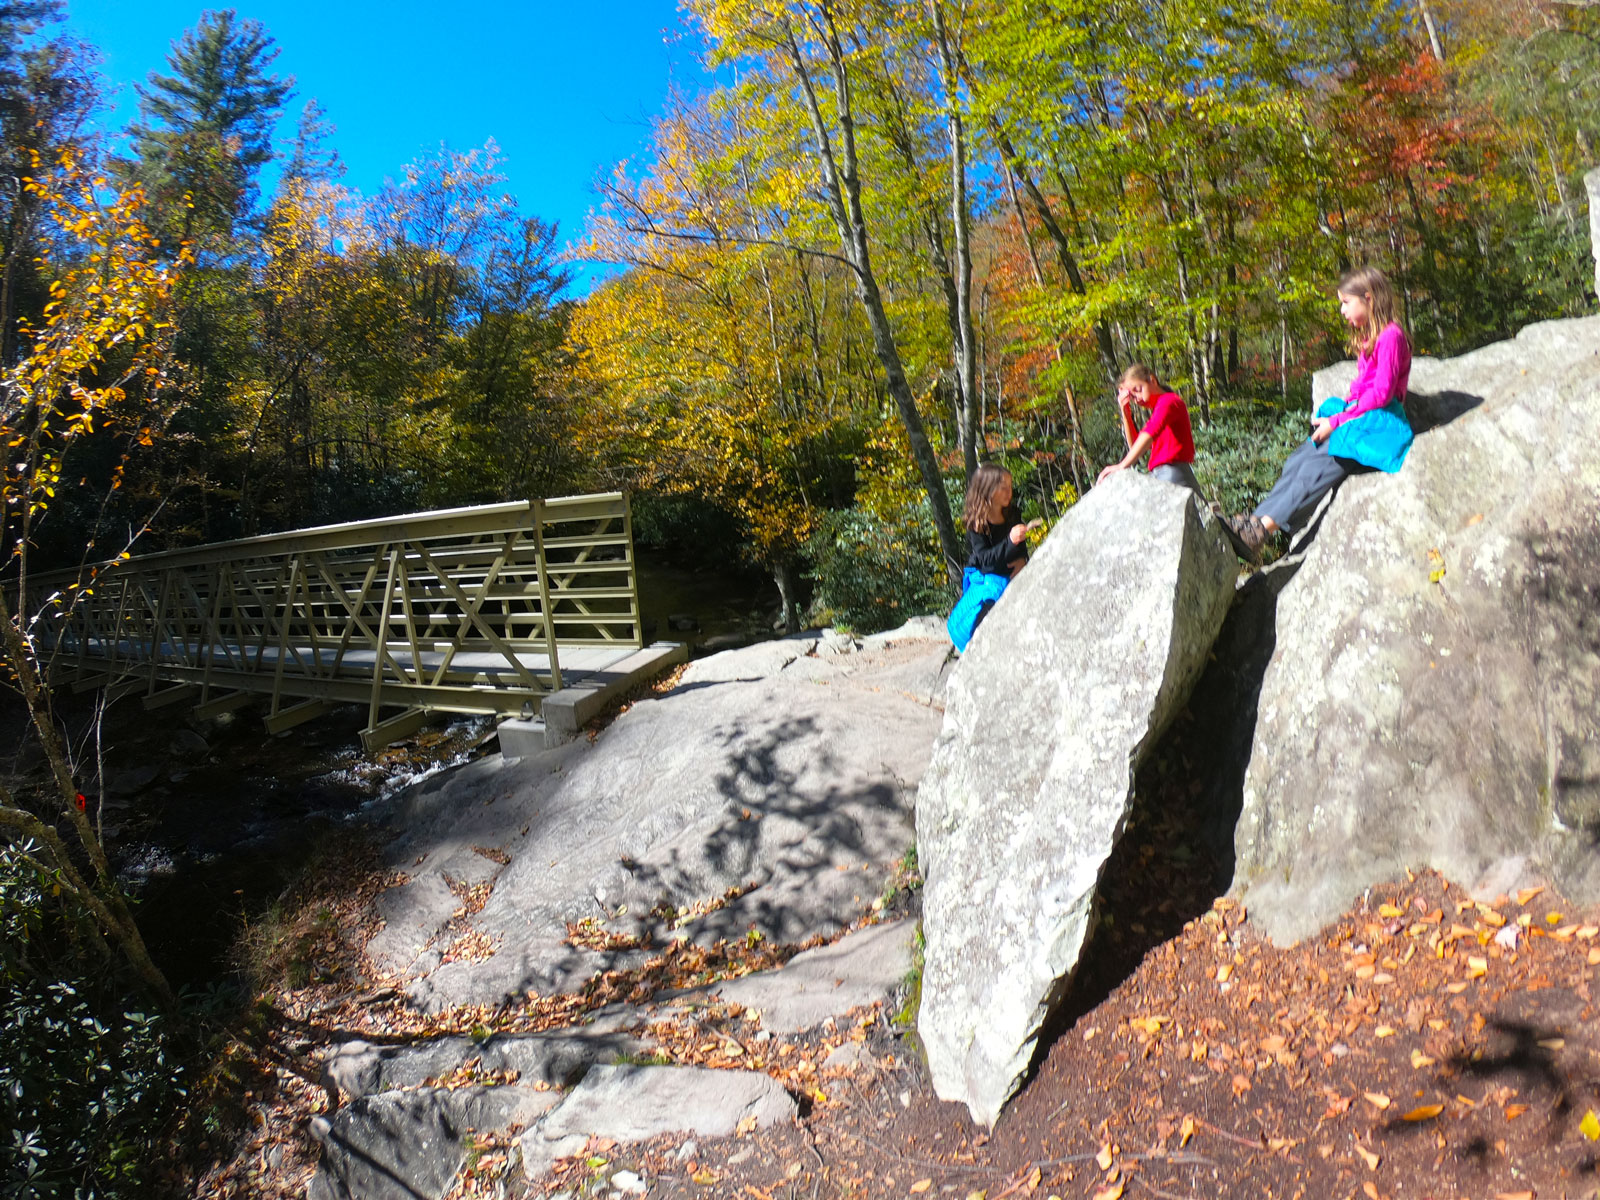 An autumn image of three girls resting on boulders overlooking a bridge over a stream on the Boone Fork Trail near Julian Price Campground on the Blue Ridge Parkway, NC